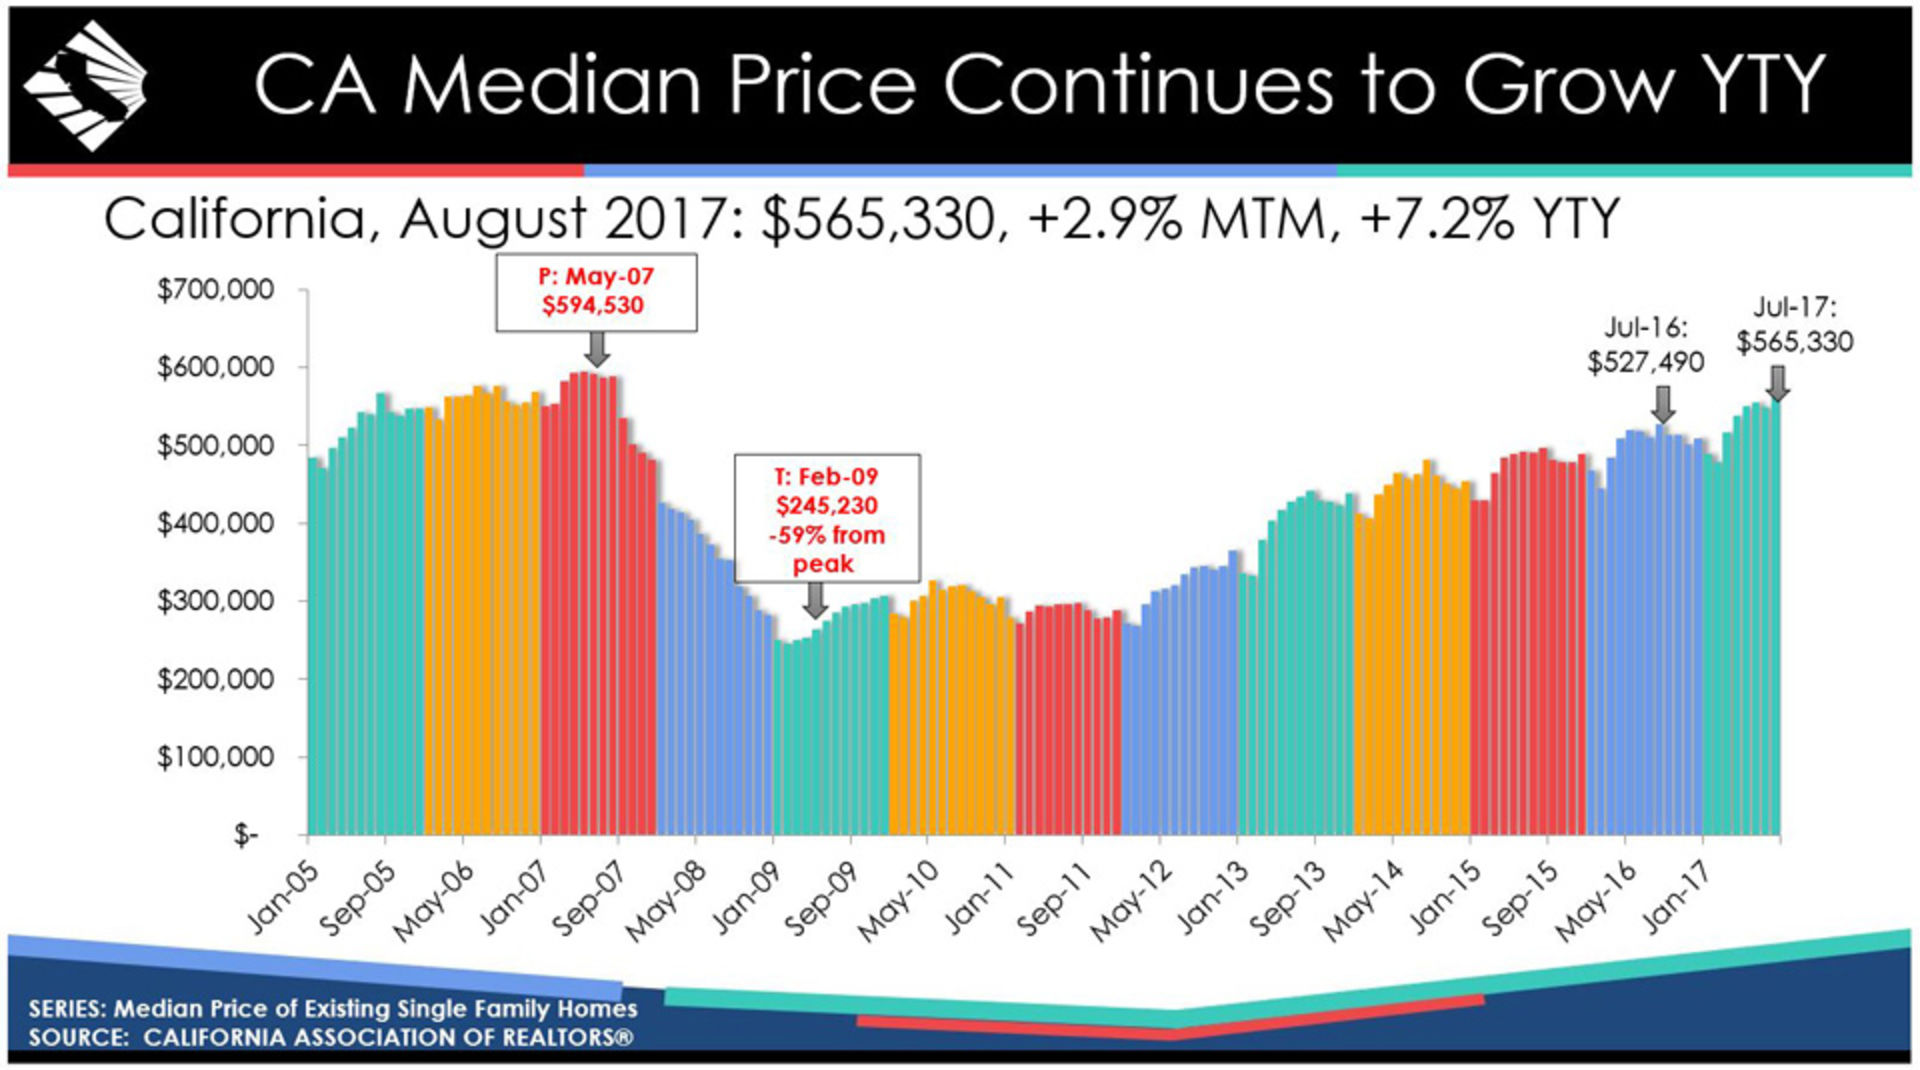 California Housing Market Defies Tight Inventory as 2017 August Sales and Median Price Propel Higher